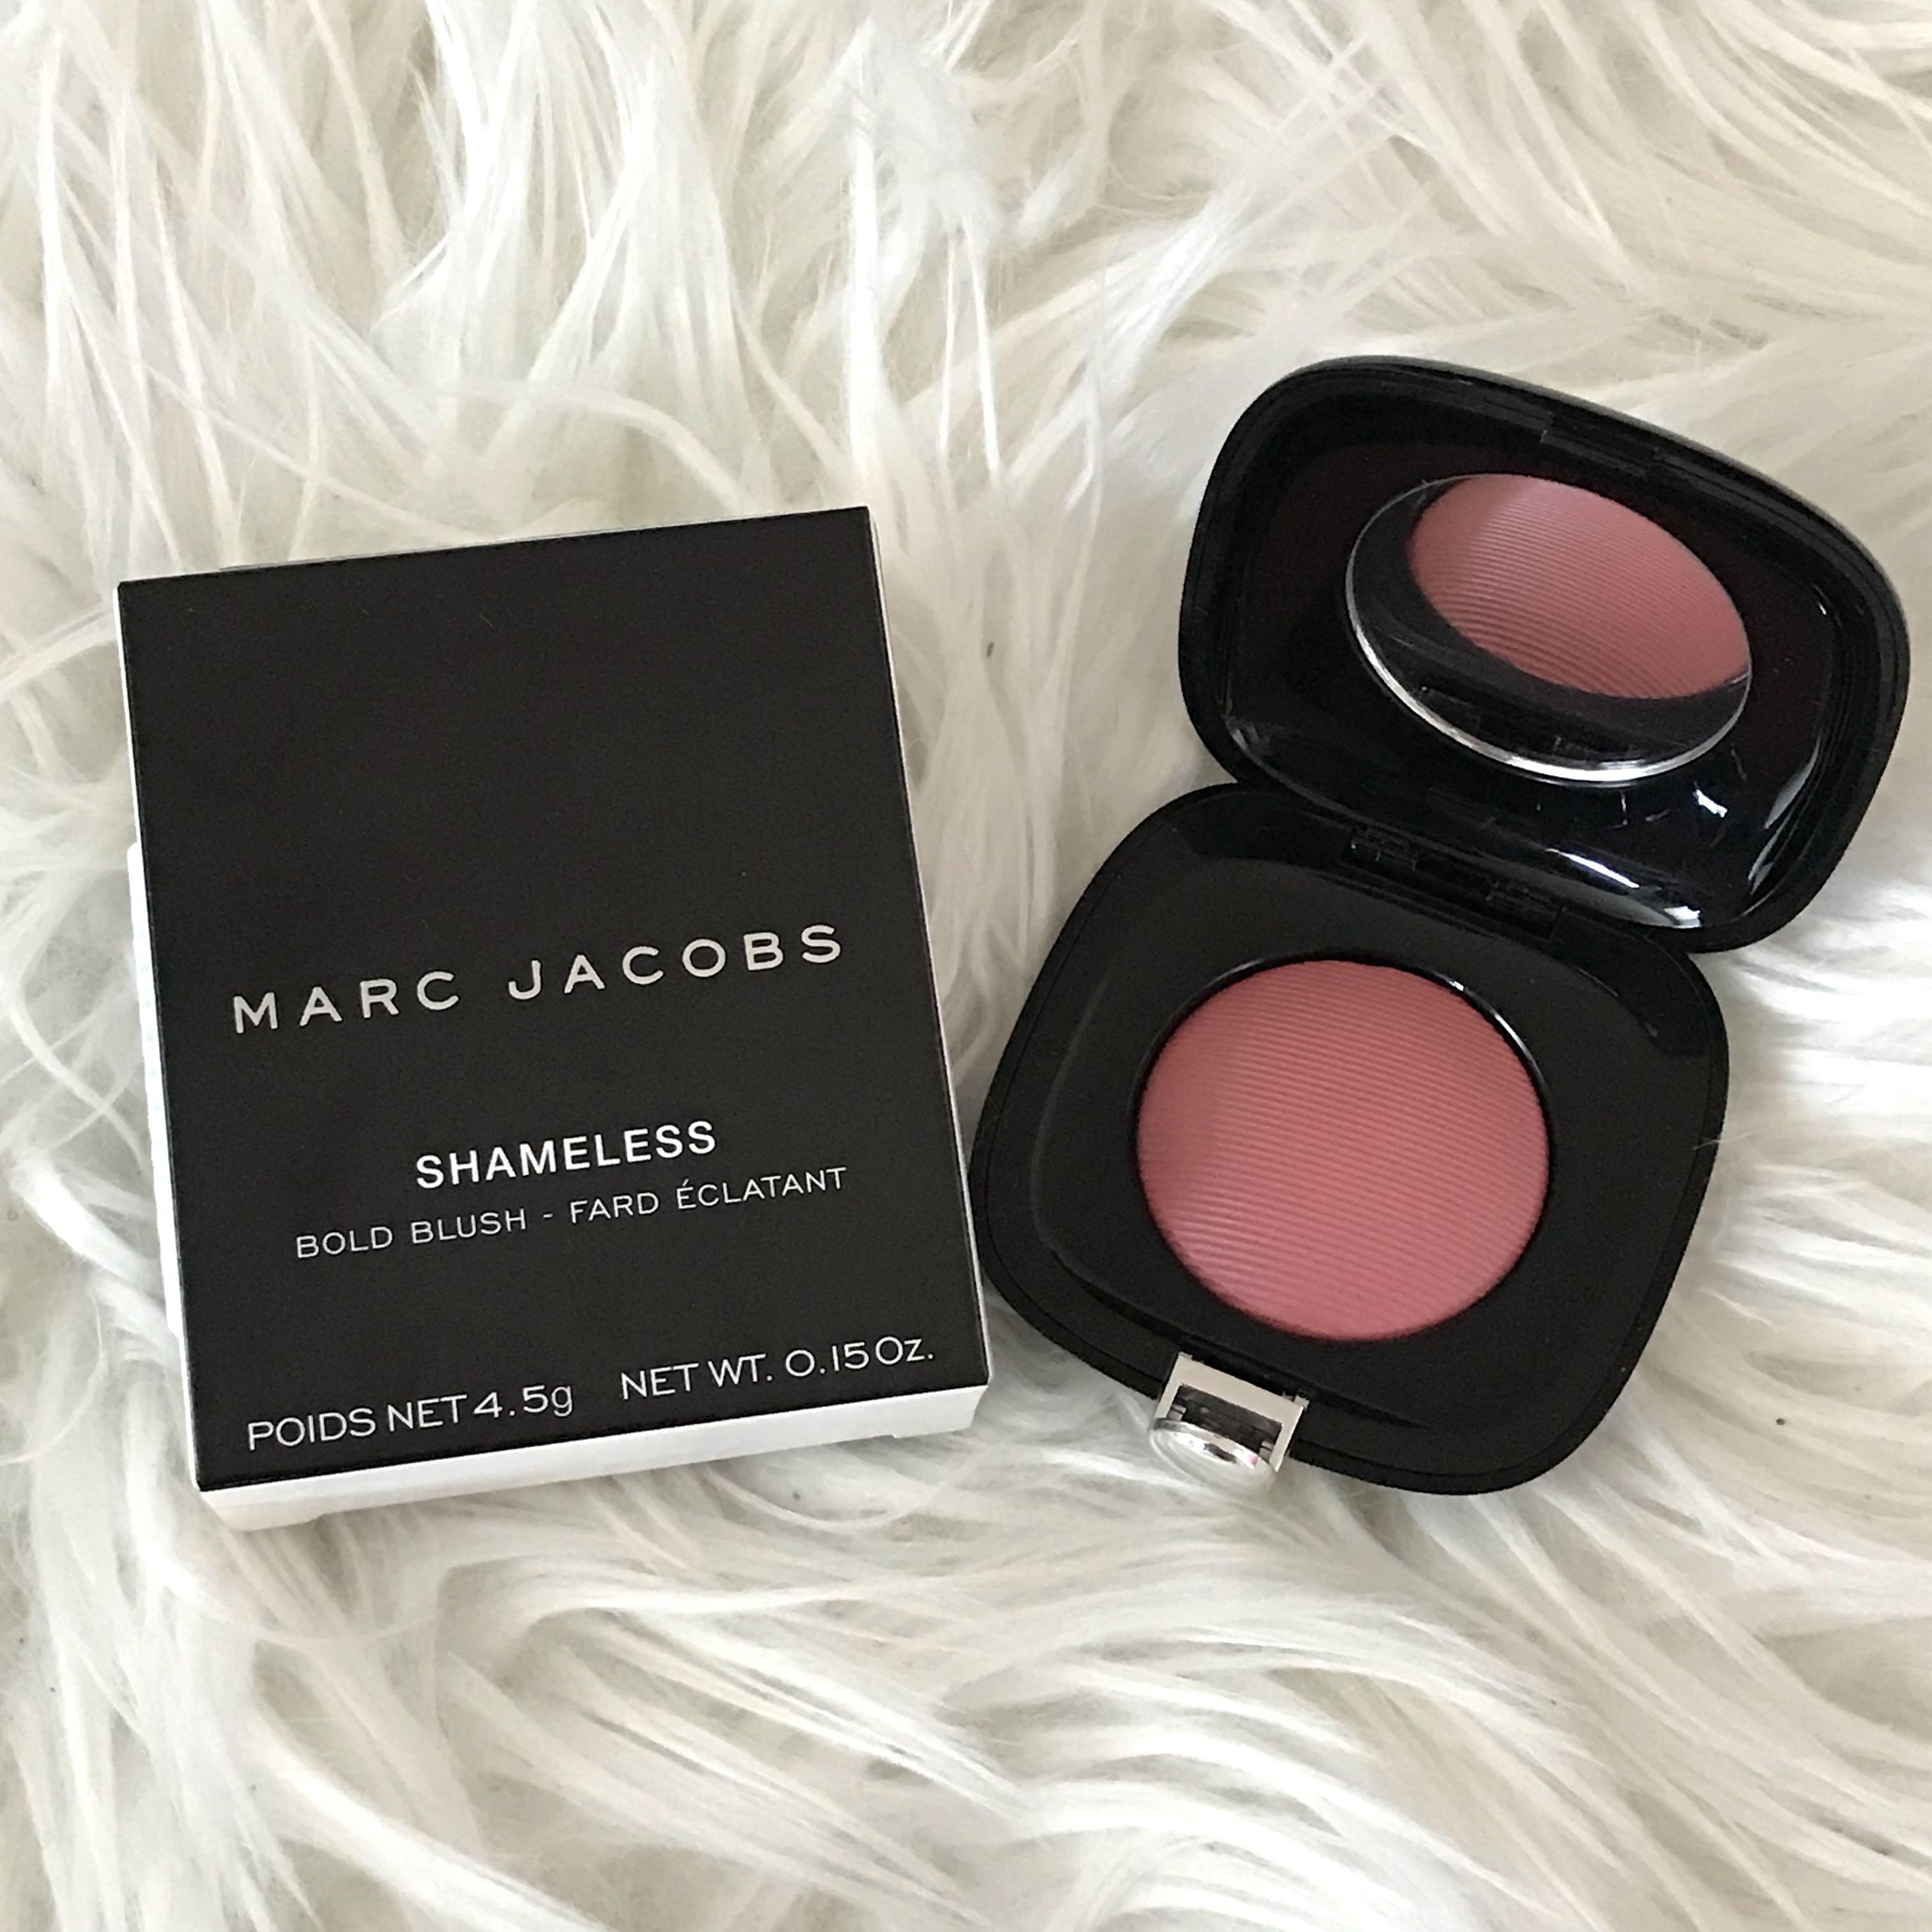 Marc Jacobs Shameless blush in Promiscuous